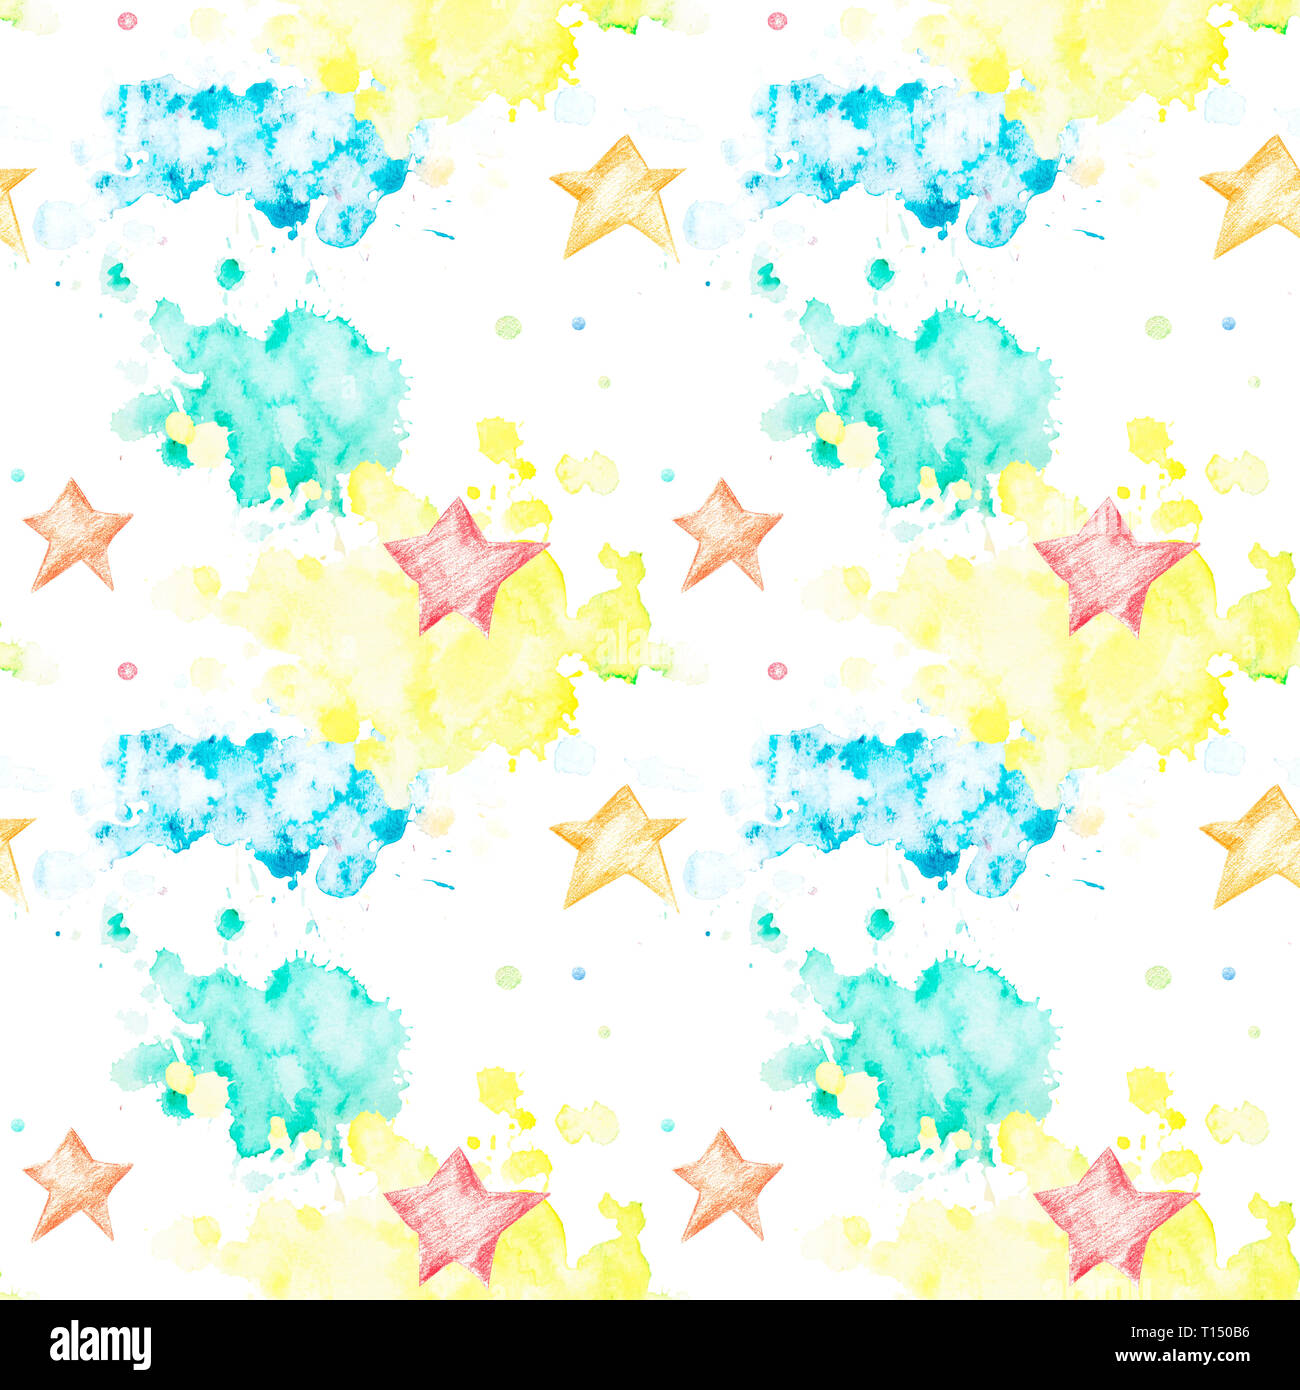 Seamless pattern with multicolored watercolor blots and asterisks on white background. Watercolor spots of yellow, green and blue in the form of cloud - Stock Image